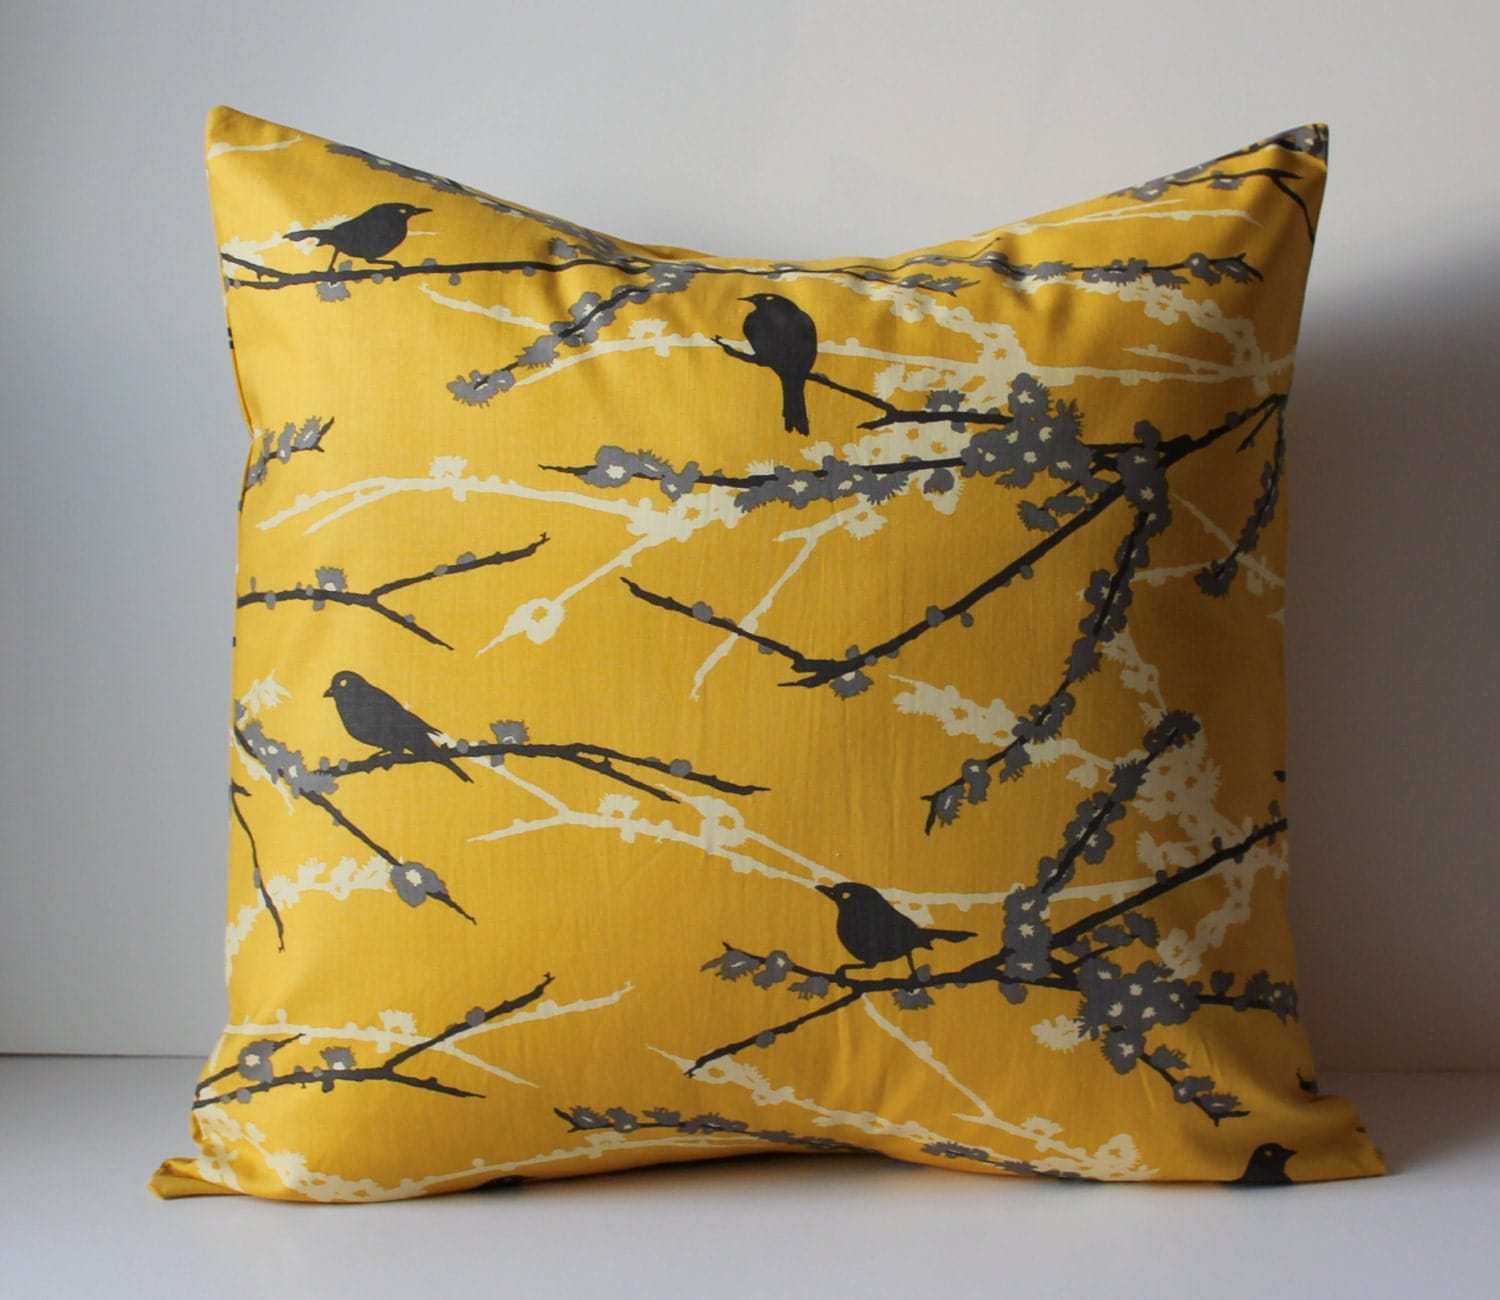 Yellow And Grey Throw Pillow Covers : Decorative Pillows Cushion Cover Mustard Yellow & Gray Birds